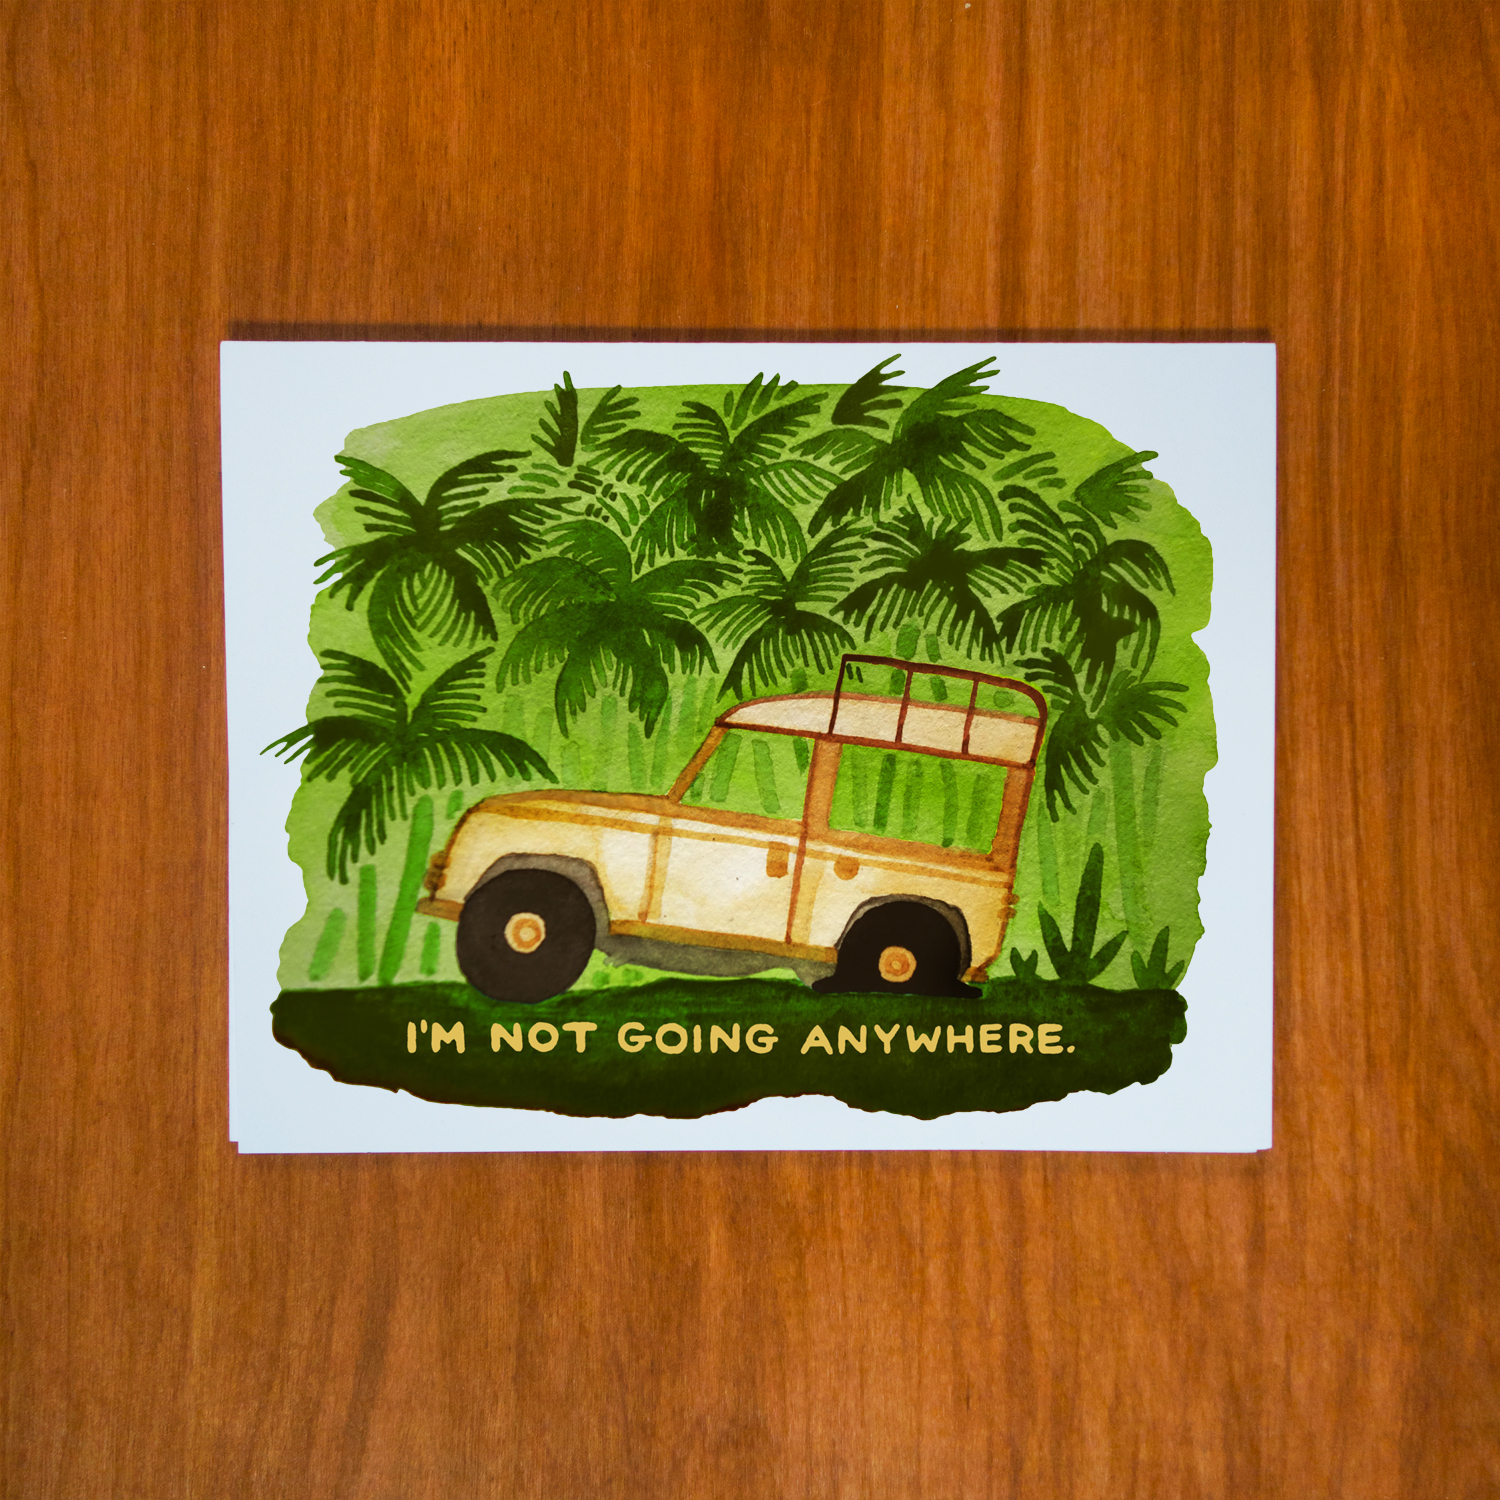 tire-greeting-card-on-wood-brighter.jpg